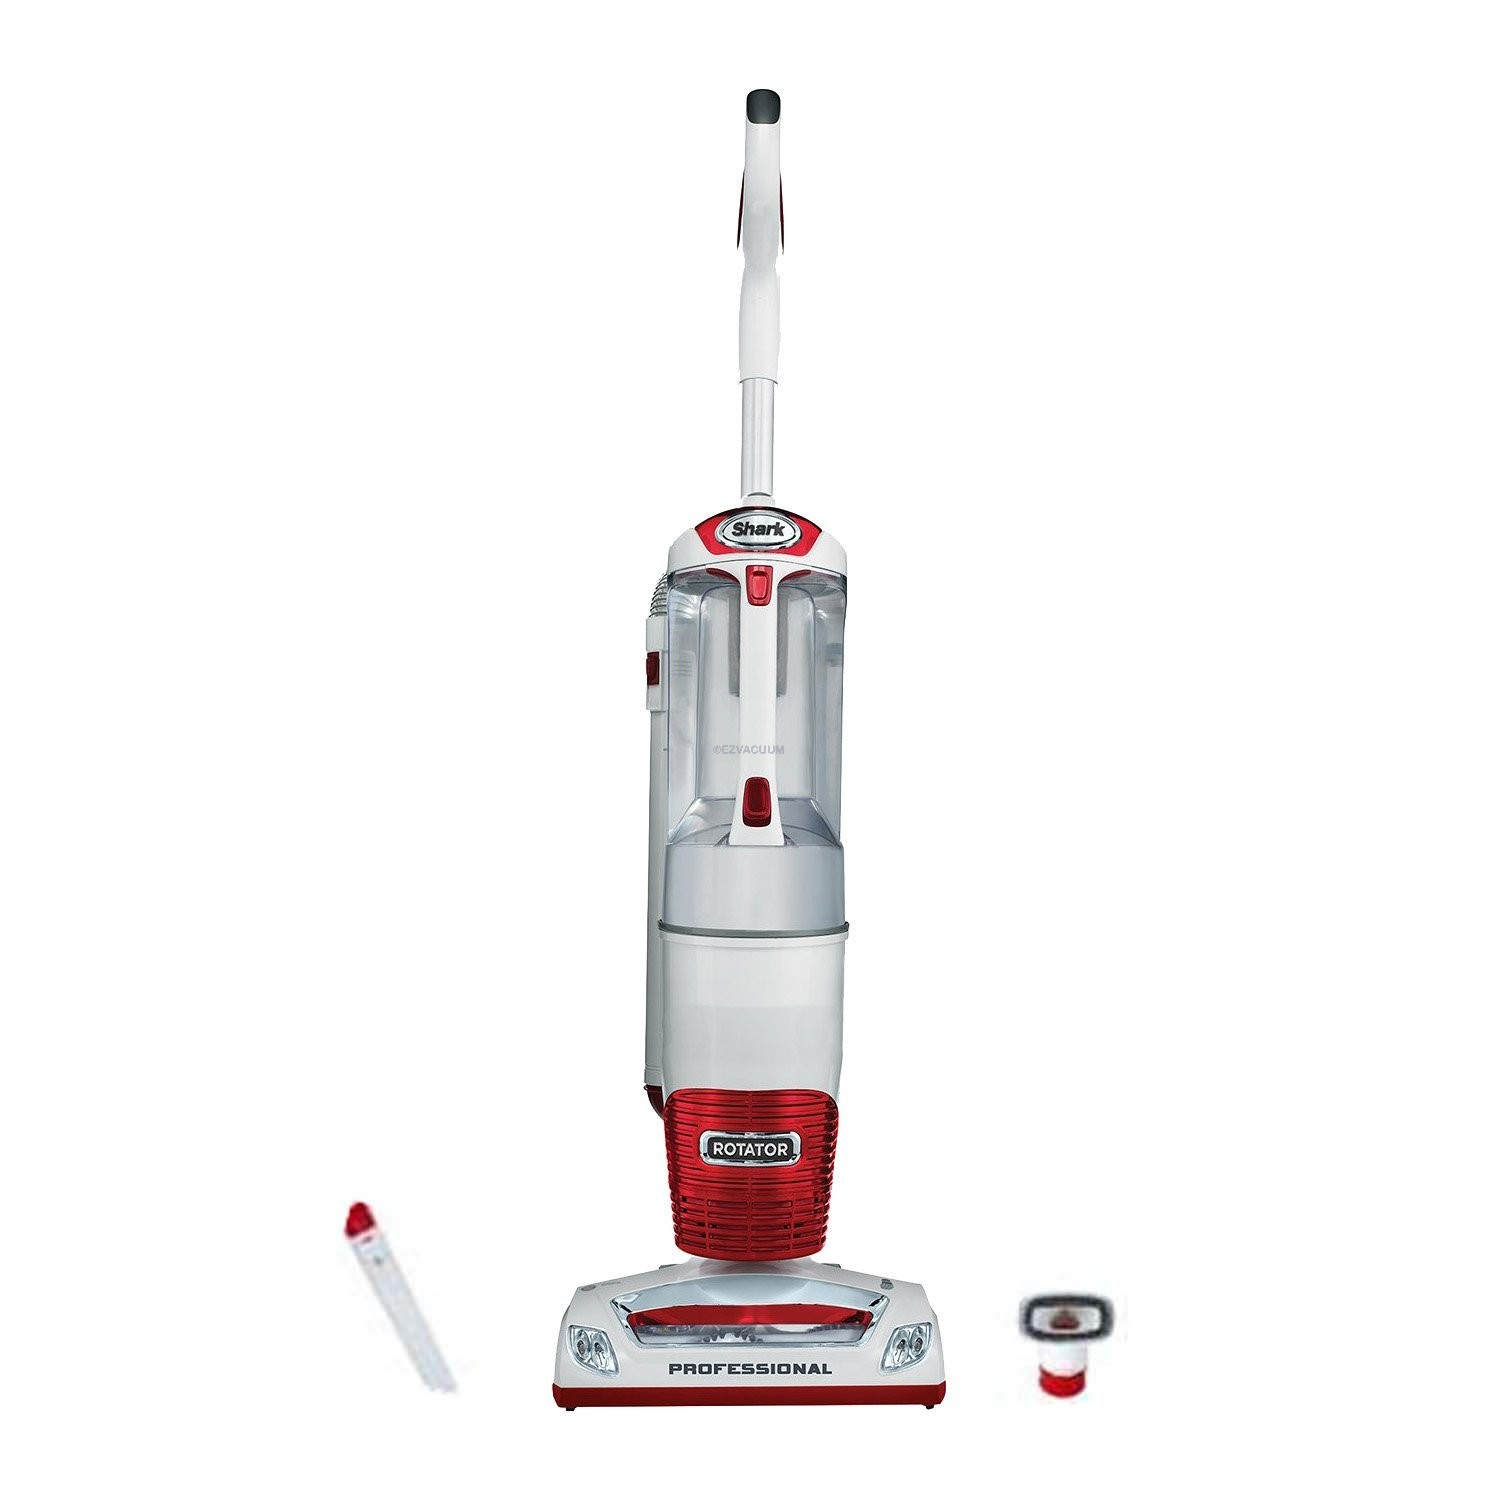 Shark Rotator Professional Vacuum w/ Accessories NV400REF (Certified Refurbished)